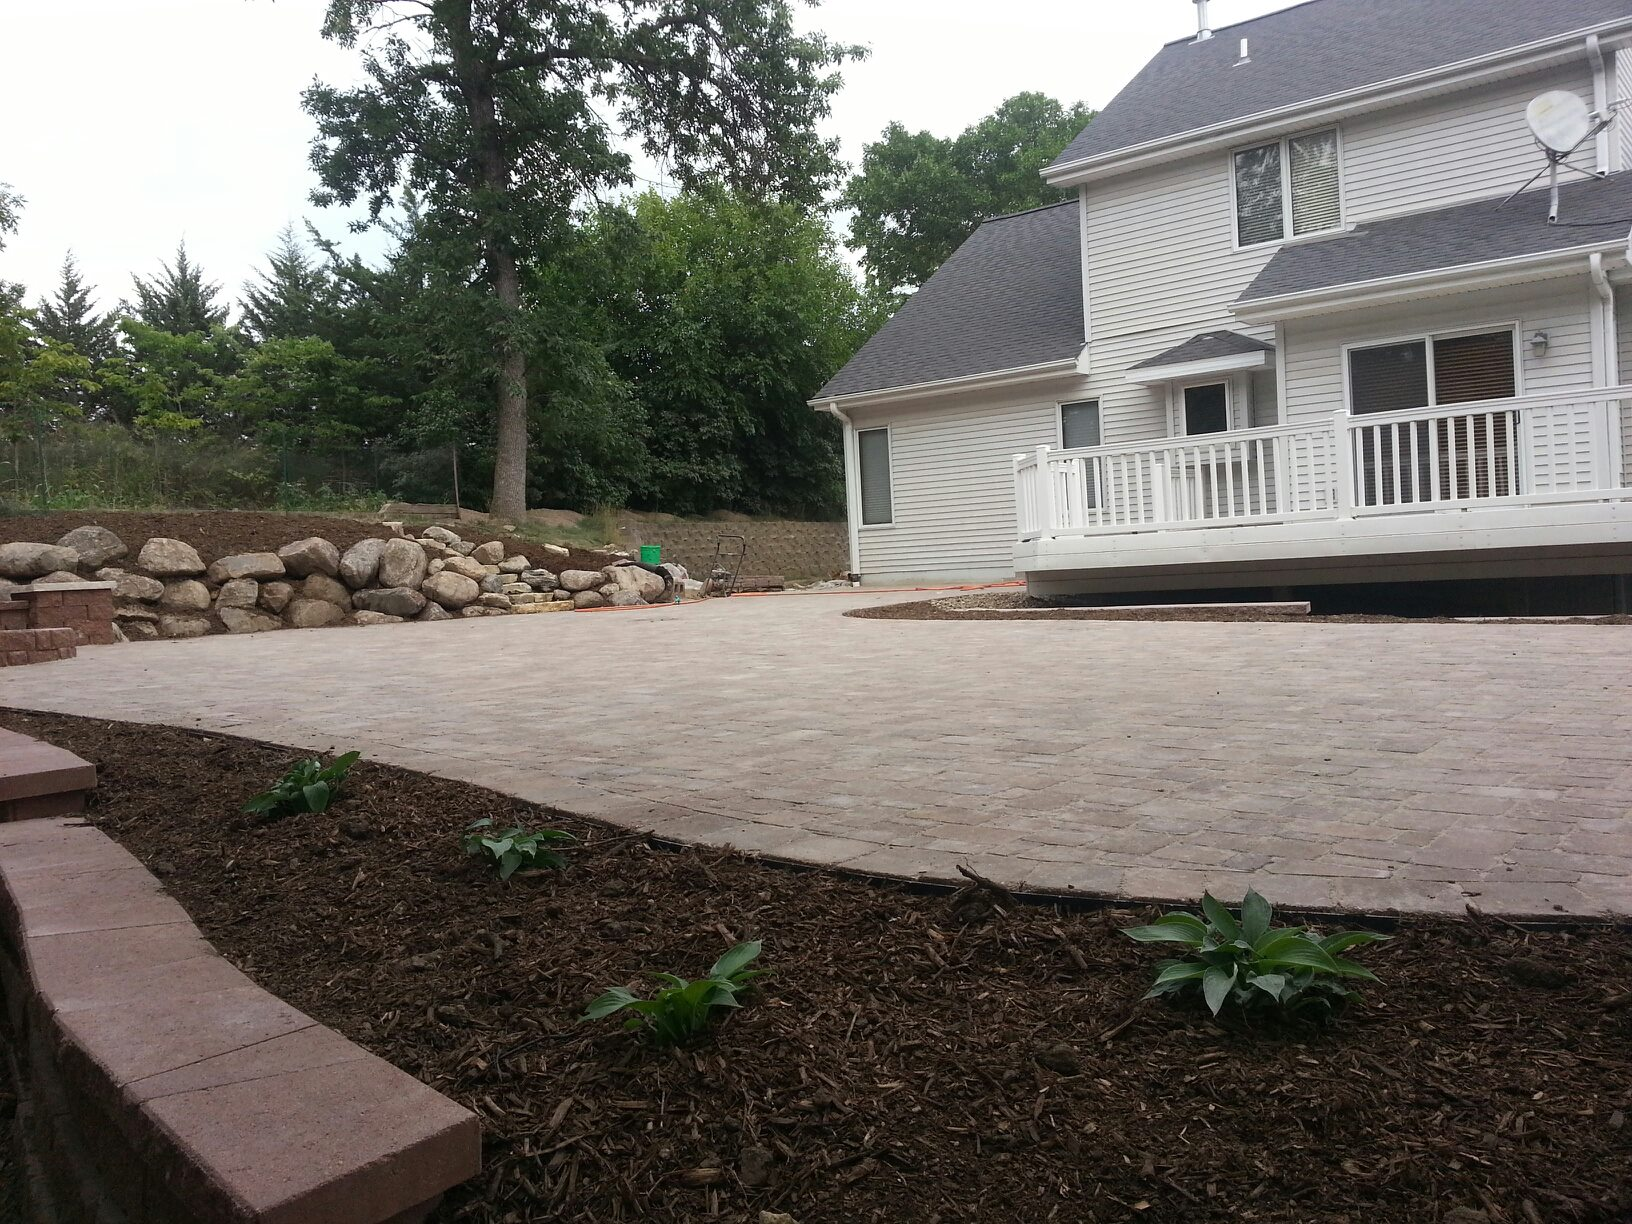 Backyard Patio Area with Manicured Landscaping